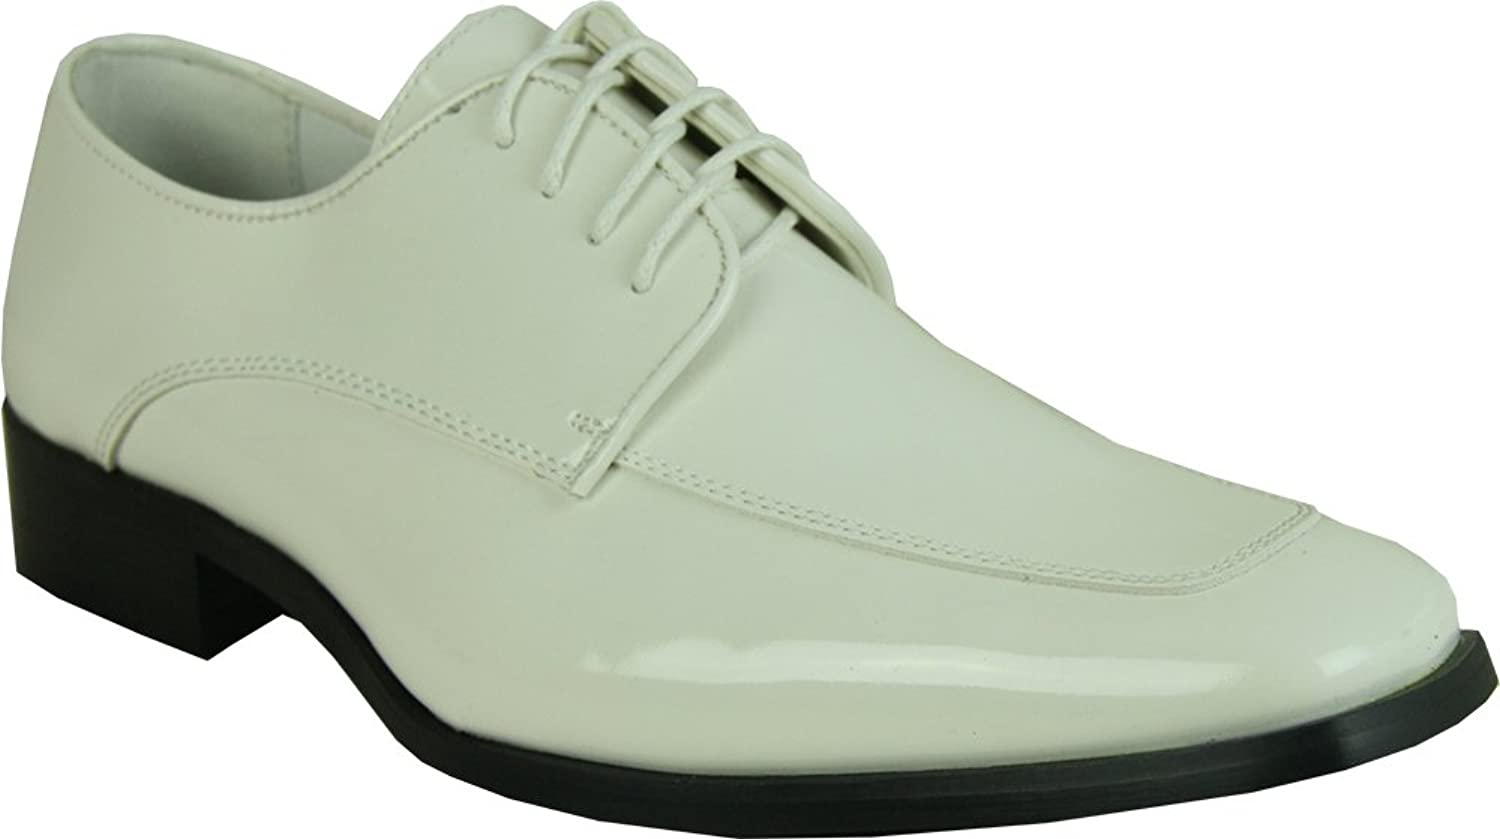 VANGELO Men's Tuxedo shoes Tux-3 Fashion Square Toe with Wrinkle Free Material Ivory Patent